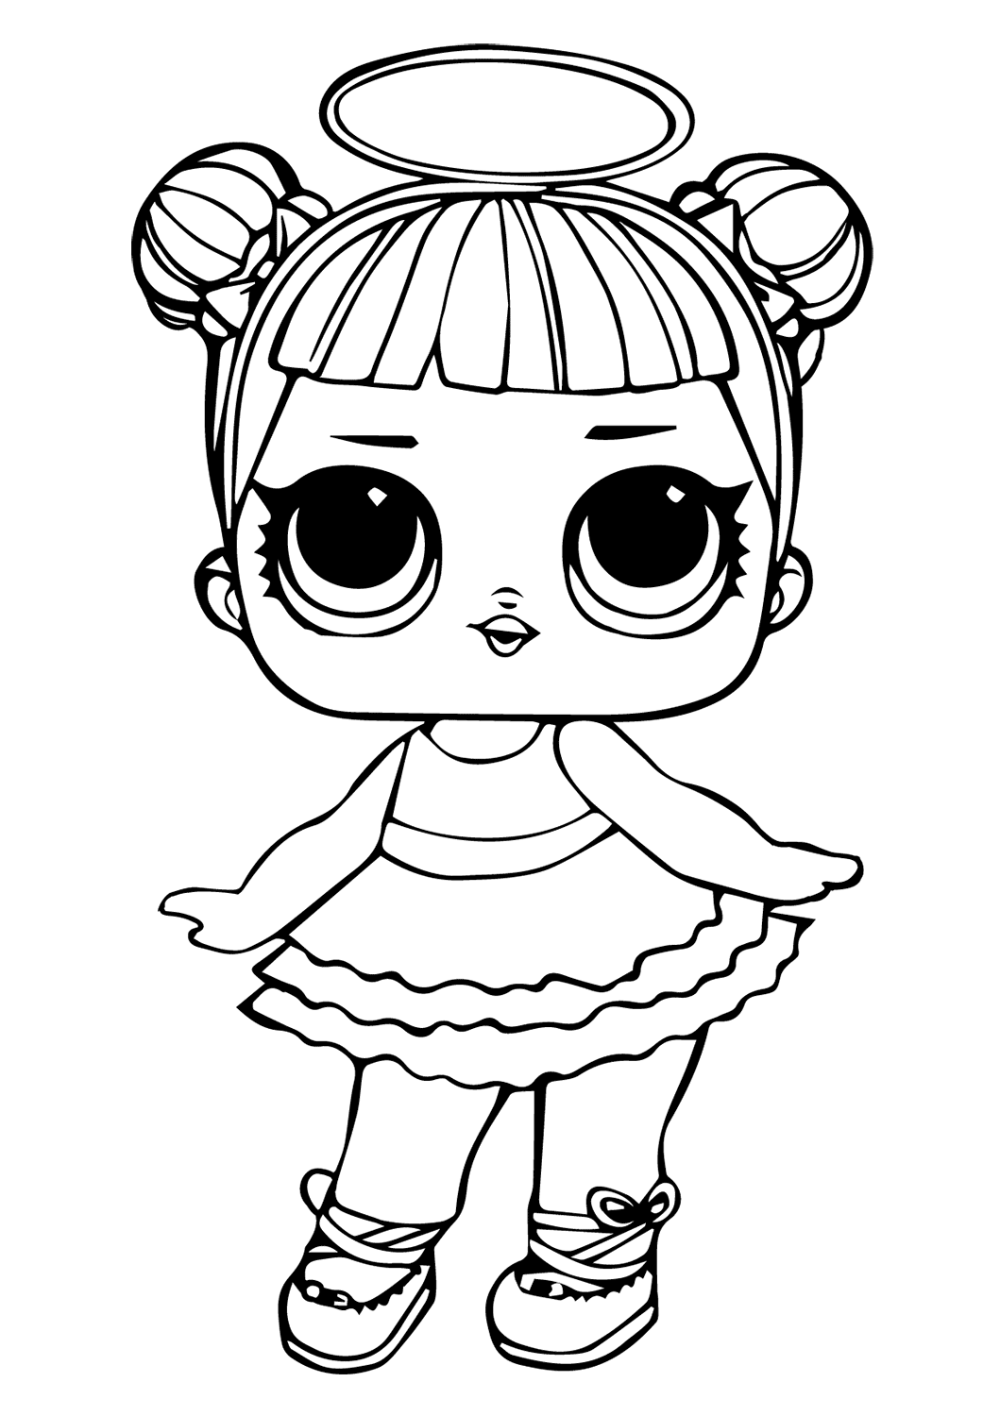 Lol Coloring Pages For Kids Kids Printable Coloring Pages Super Coloring Pages Cartoon Coloring Pages